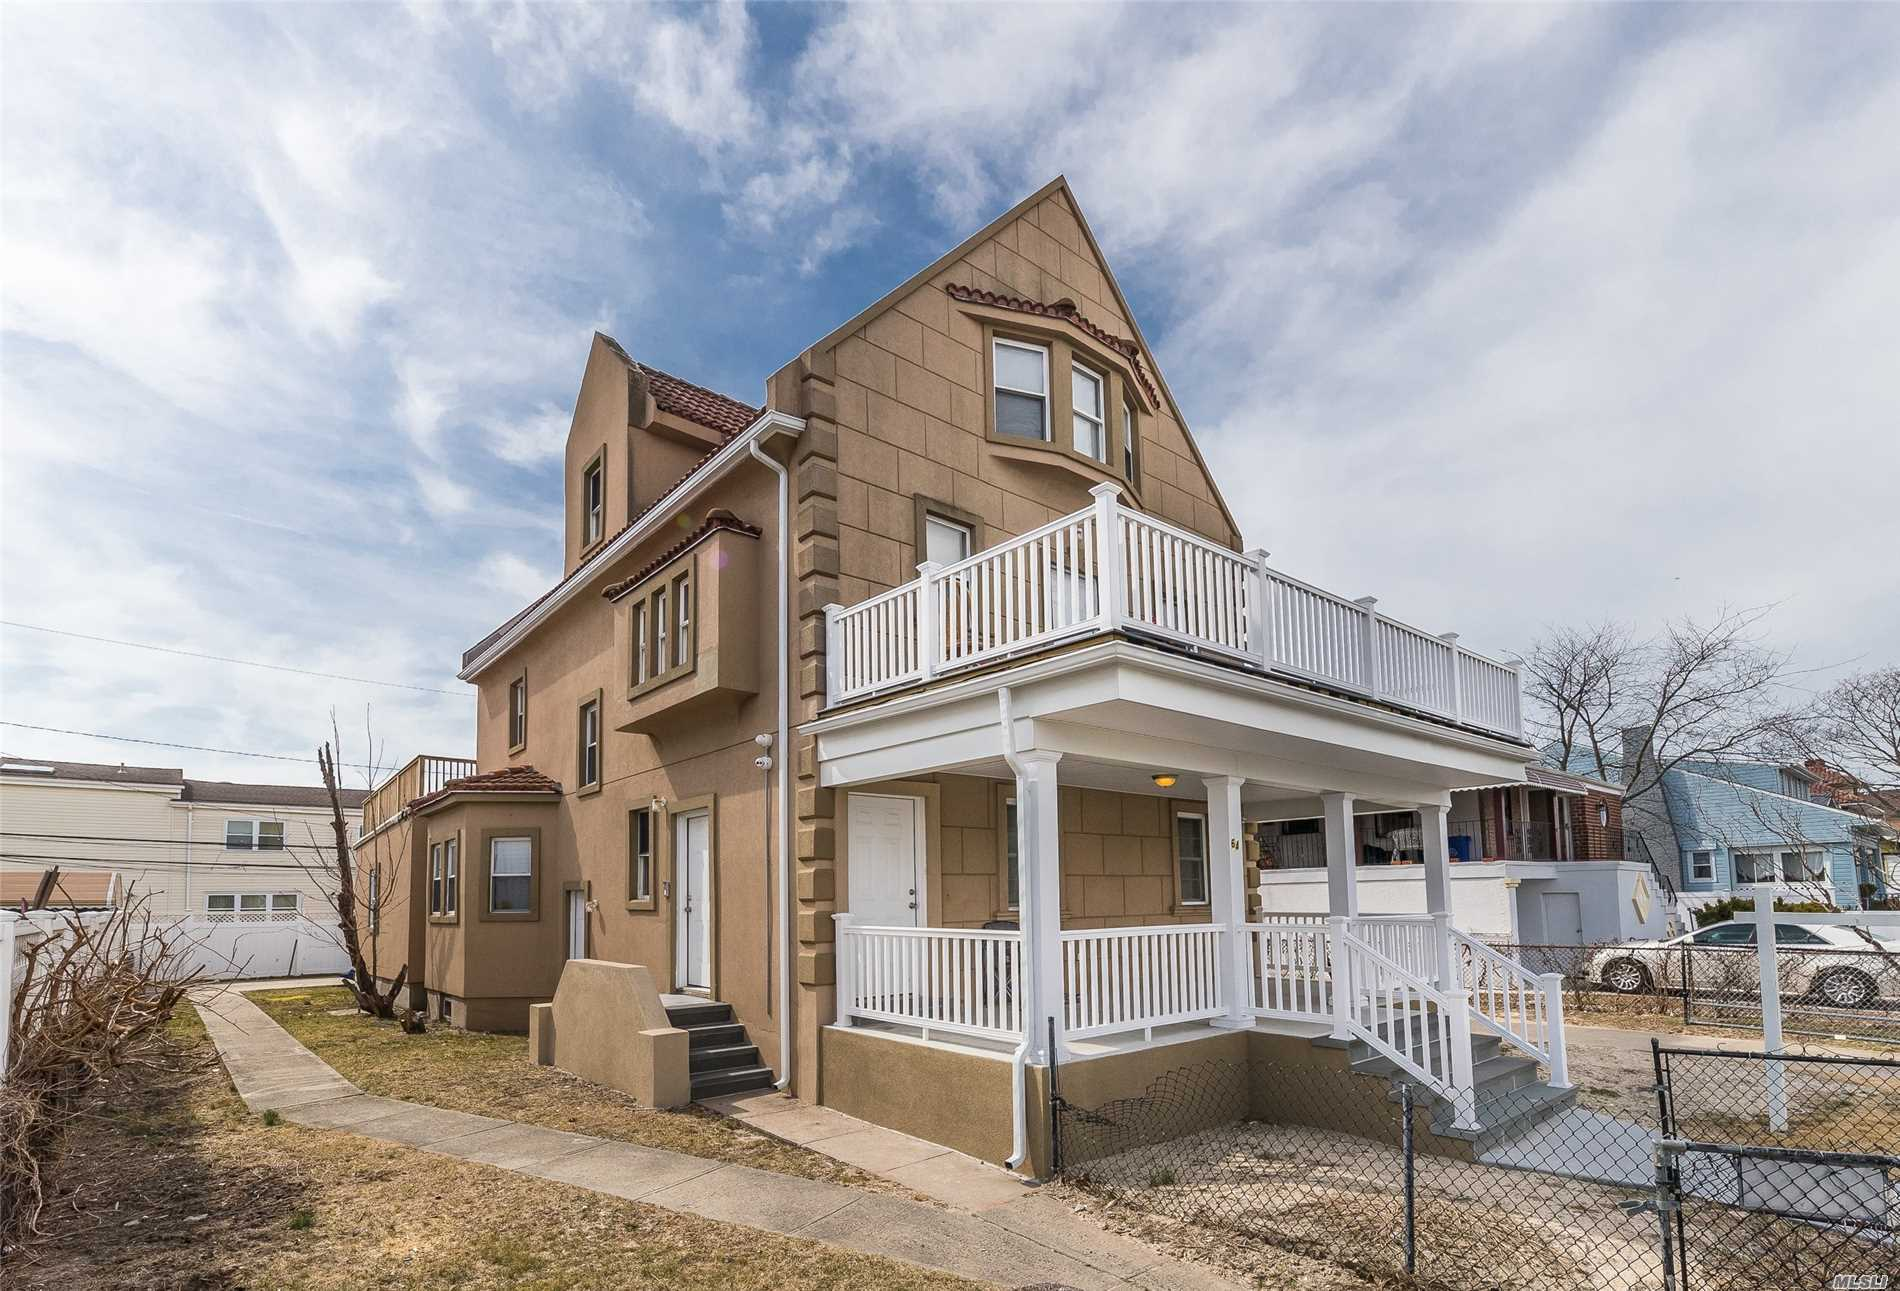 Beautiful, Airy, All new Bathrooms and Kitchens, Spend your summers sitting on a covered porch or on an upper breezy open porch. Steps from LIRR, 55 minutes from Manhattan, Have your tenant pay the majority of your mortgage. House is currently rented generating $7, 500 a month income.